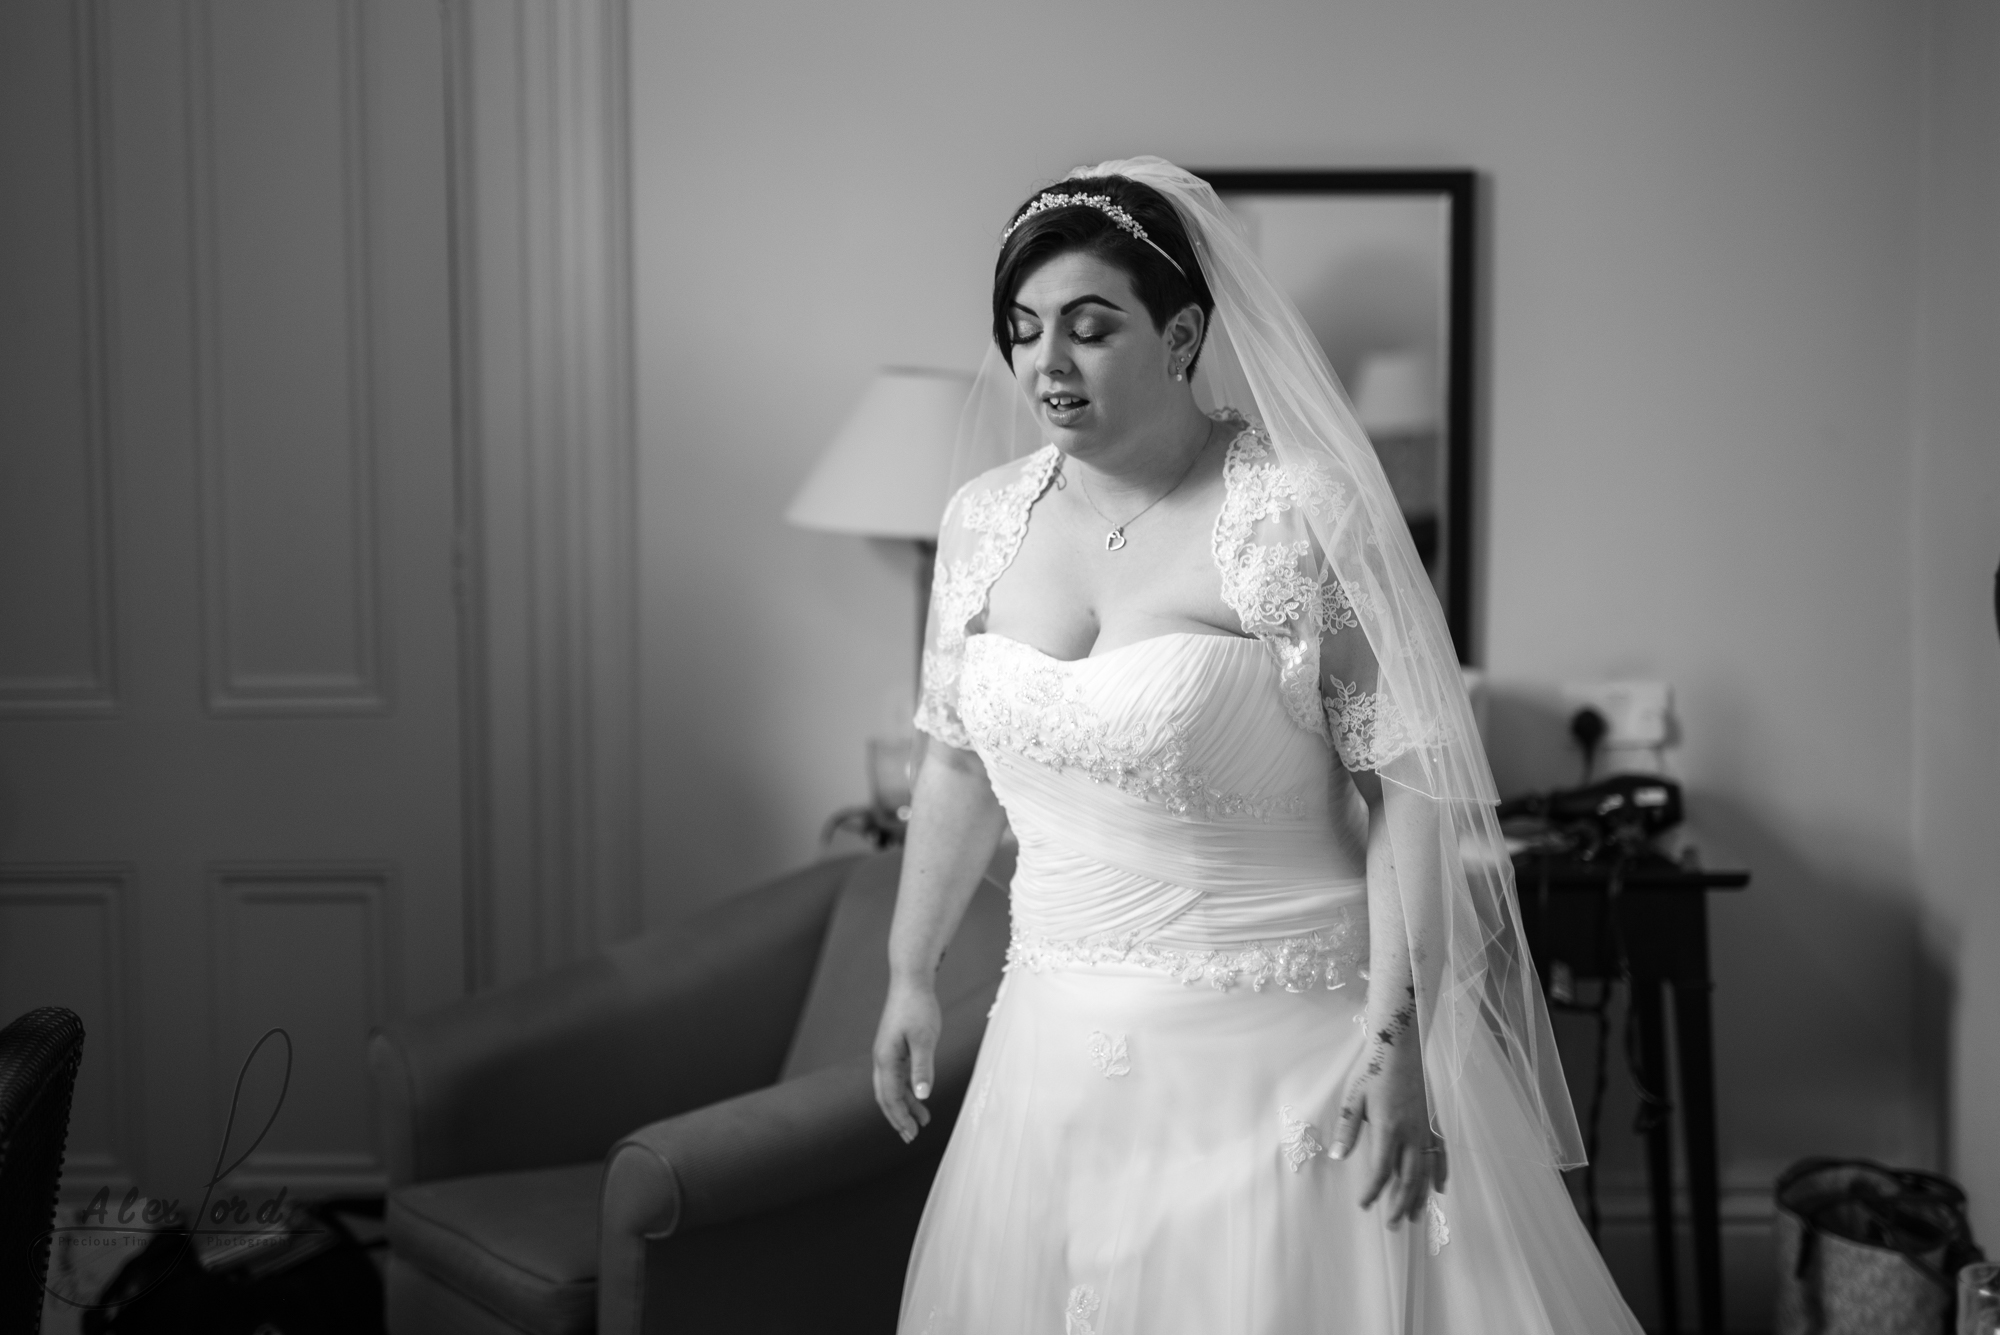 the bride all ready for the wedding ceremony, wearing a lace princess dress